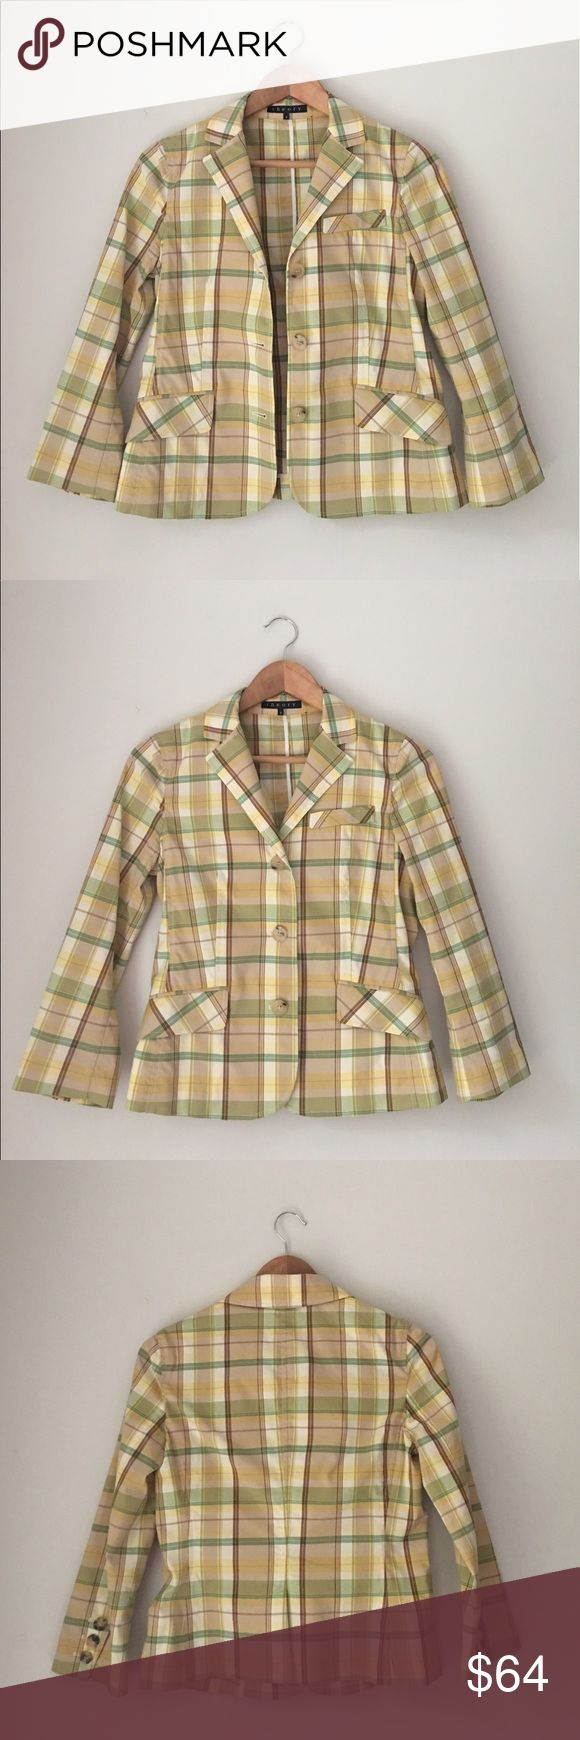 Theory Yellow Plaid Cotton Blazer Gorgeous Yellow/green plaid cotton blazer. 3 button front closure. Size 6. EUC. Theory Jackets & Coats Blazers